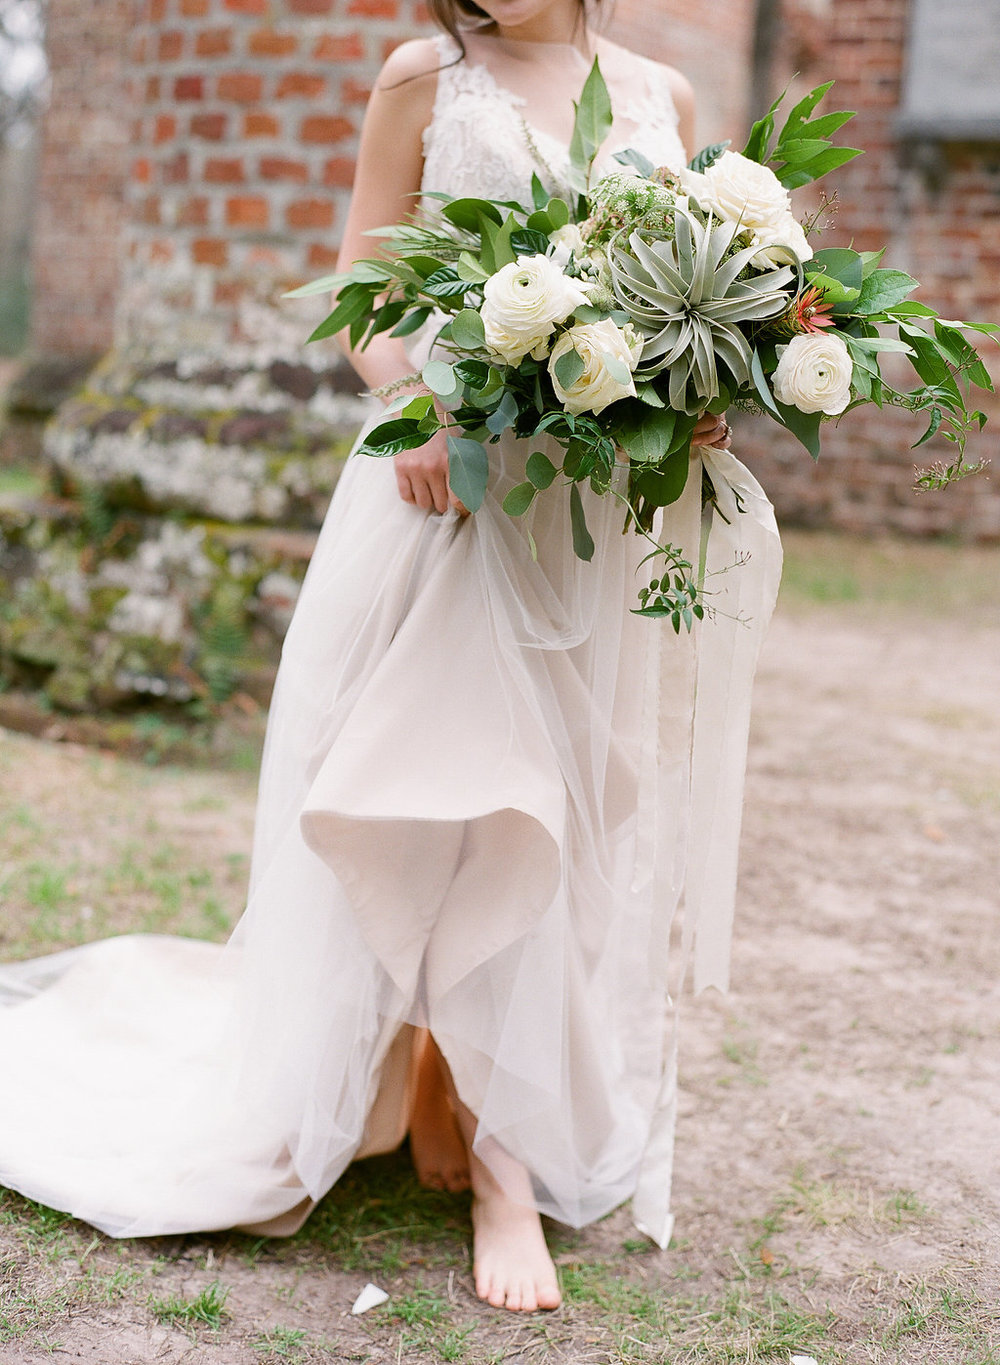 the-happy-bloom-photography-ti-adora-7553-ivory-and-beau-bridal-boutique-savannah-wedding-dresses-old-sheldon-ruins-savannah-wedding-planner-savannah-event-designer-savannah-weddings-savannah-film-photographer-savannah-photography-workshop-10.jpg